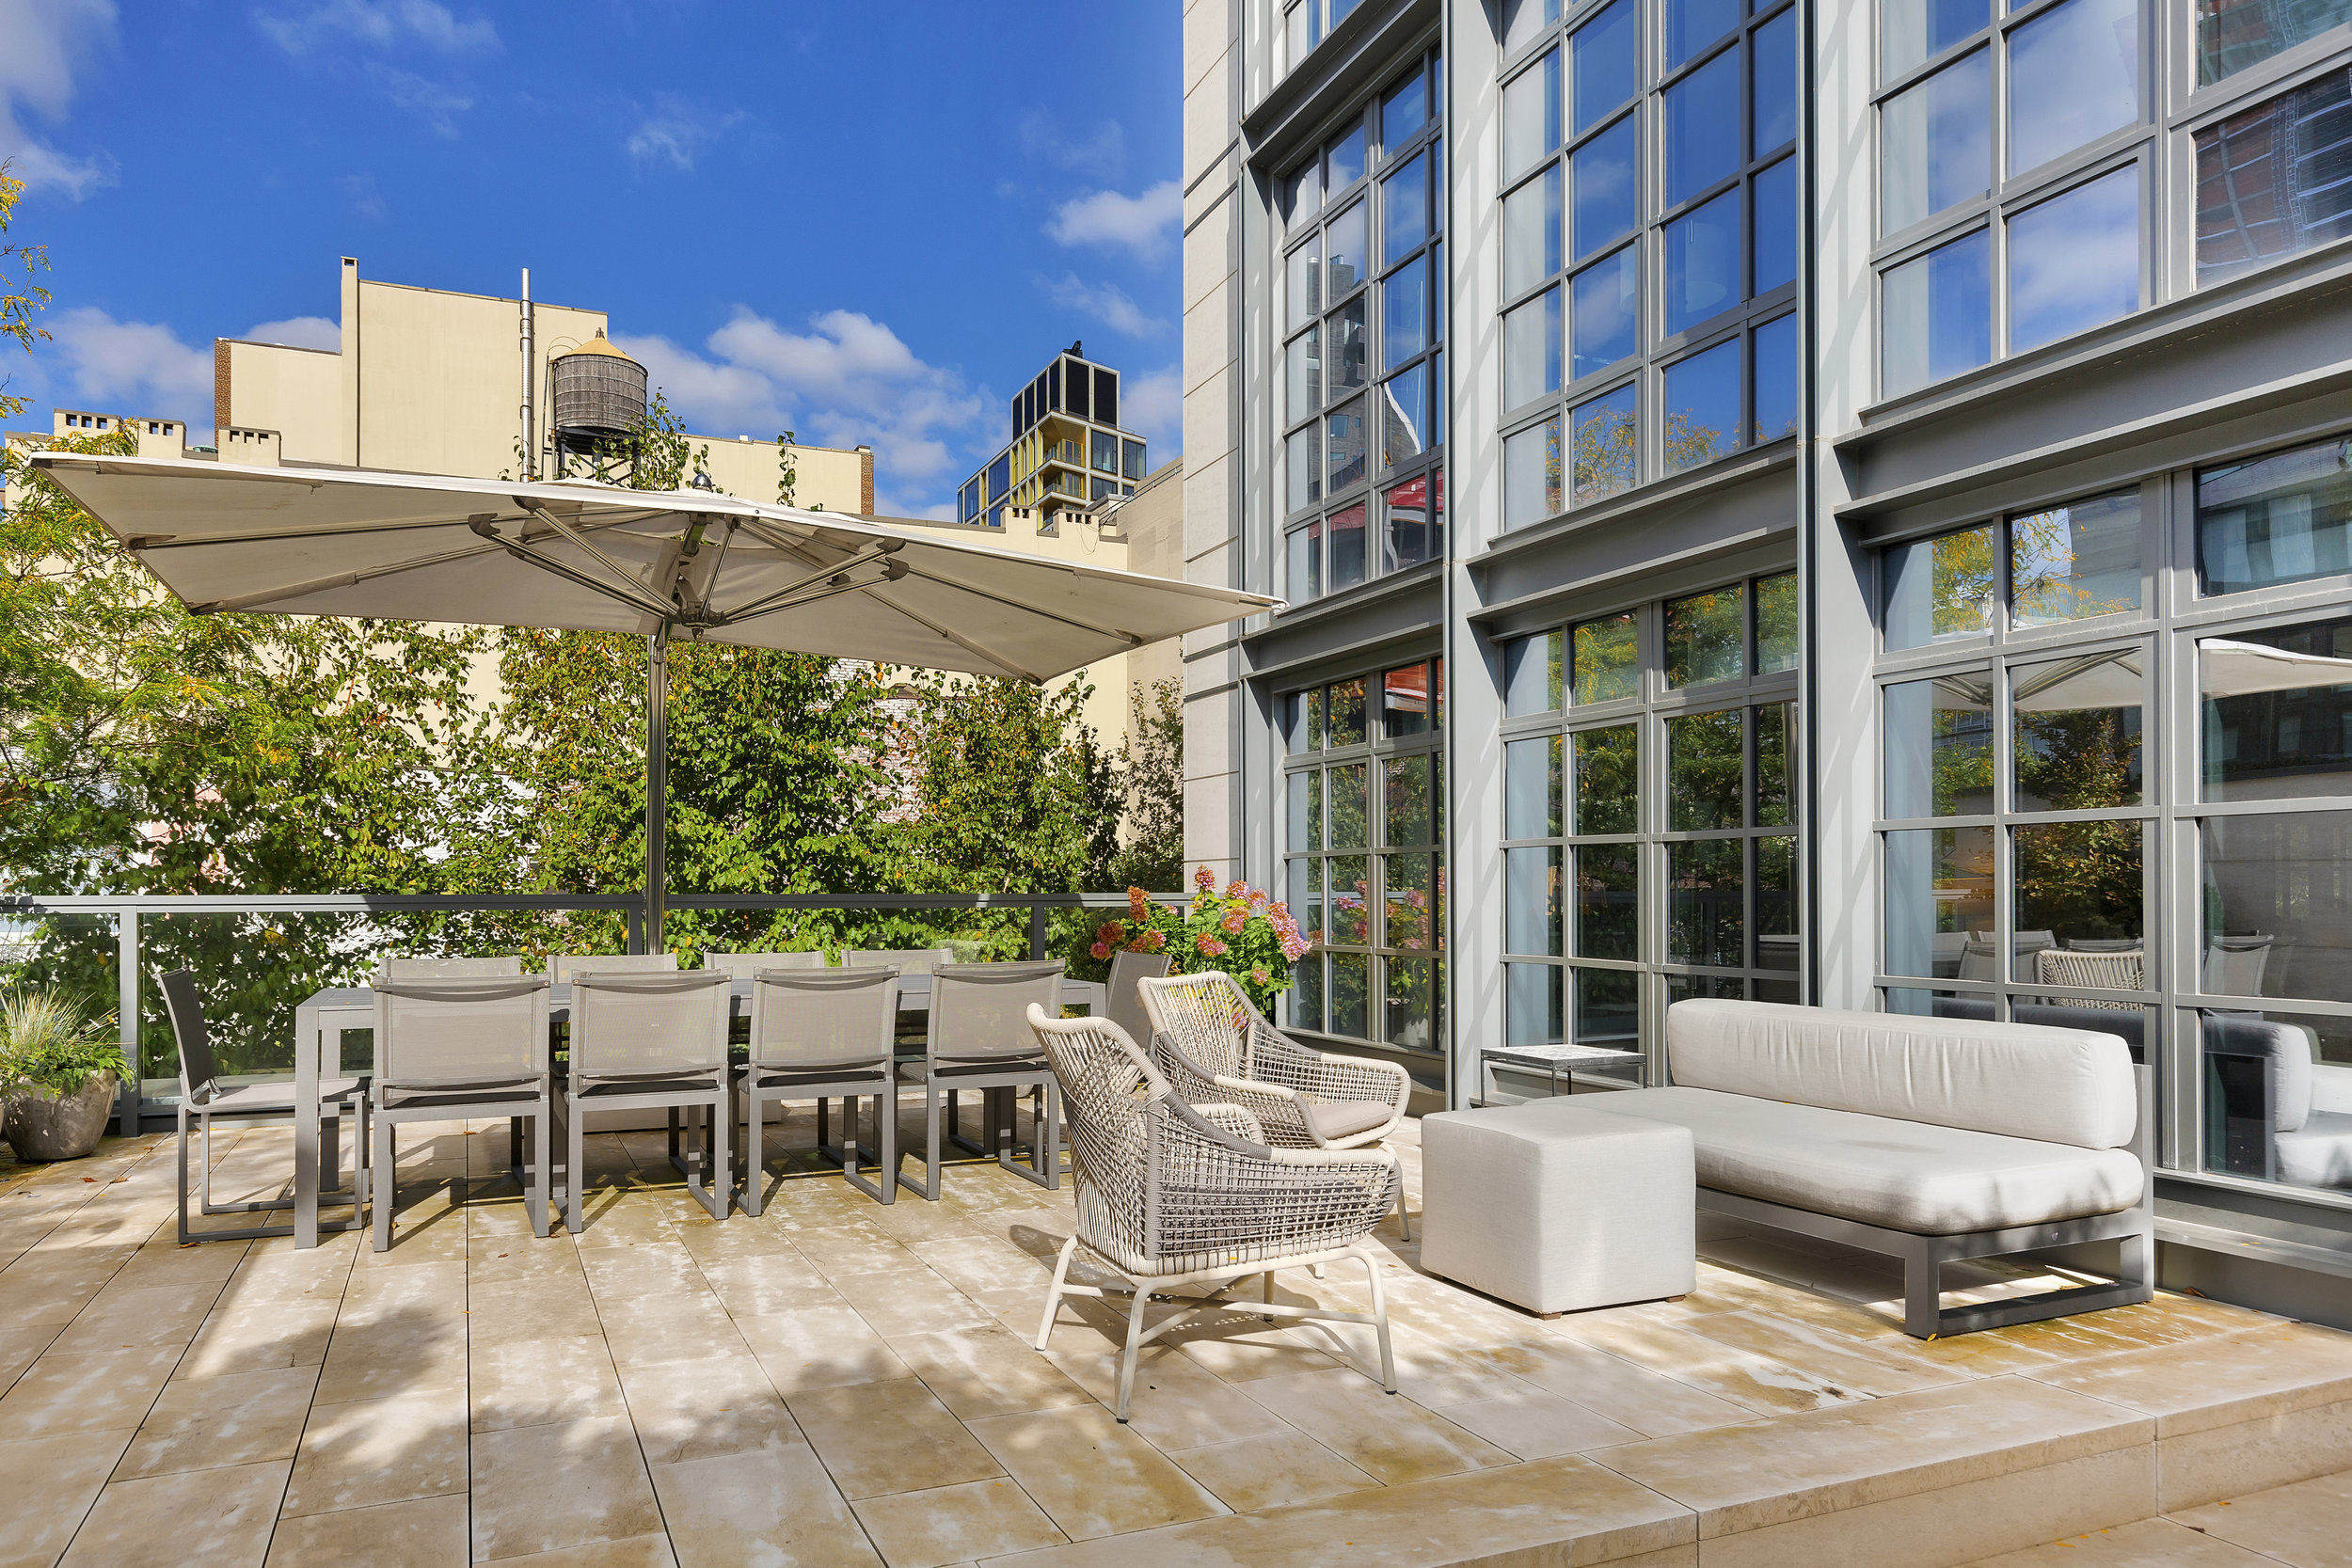 500West21stStreet5D-ChelseaNewYork_Scott_Boyd_DouglasElliman_Photography_79315538_high_res.jpg